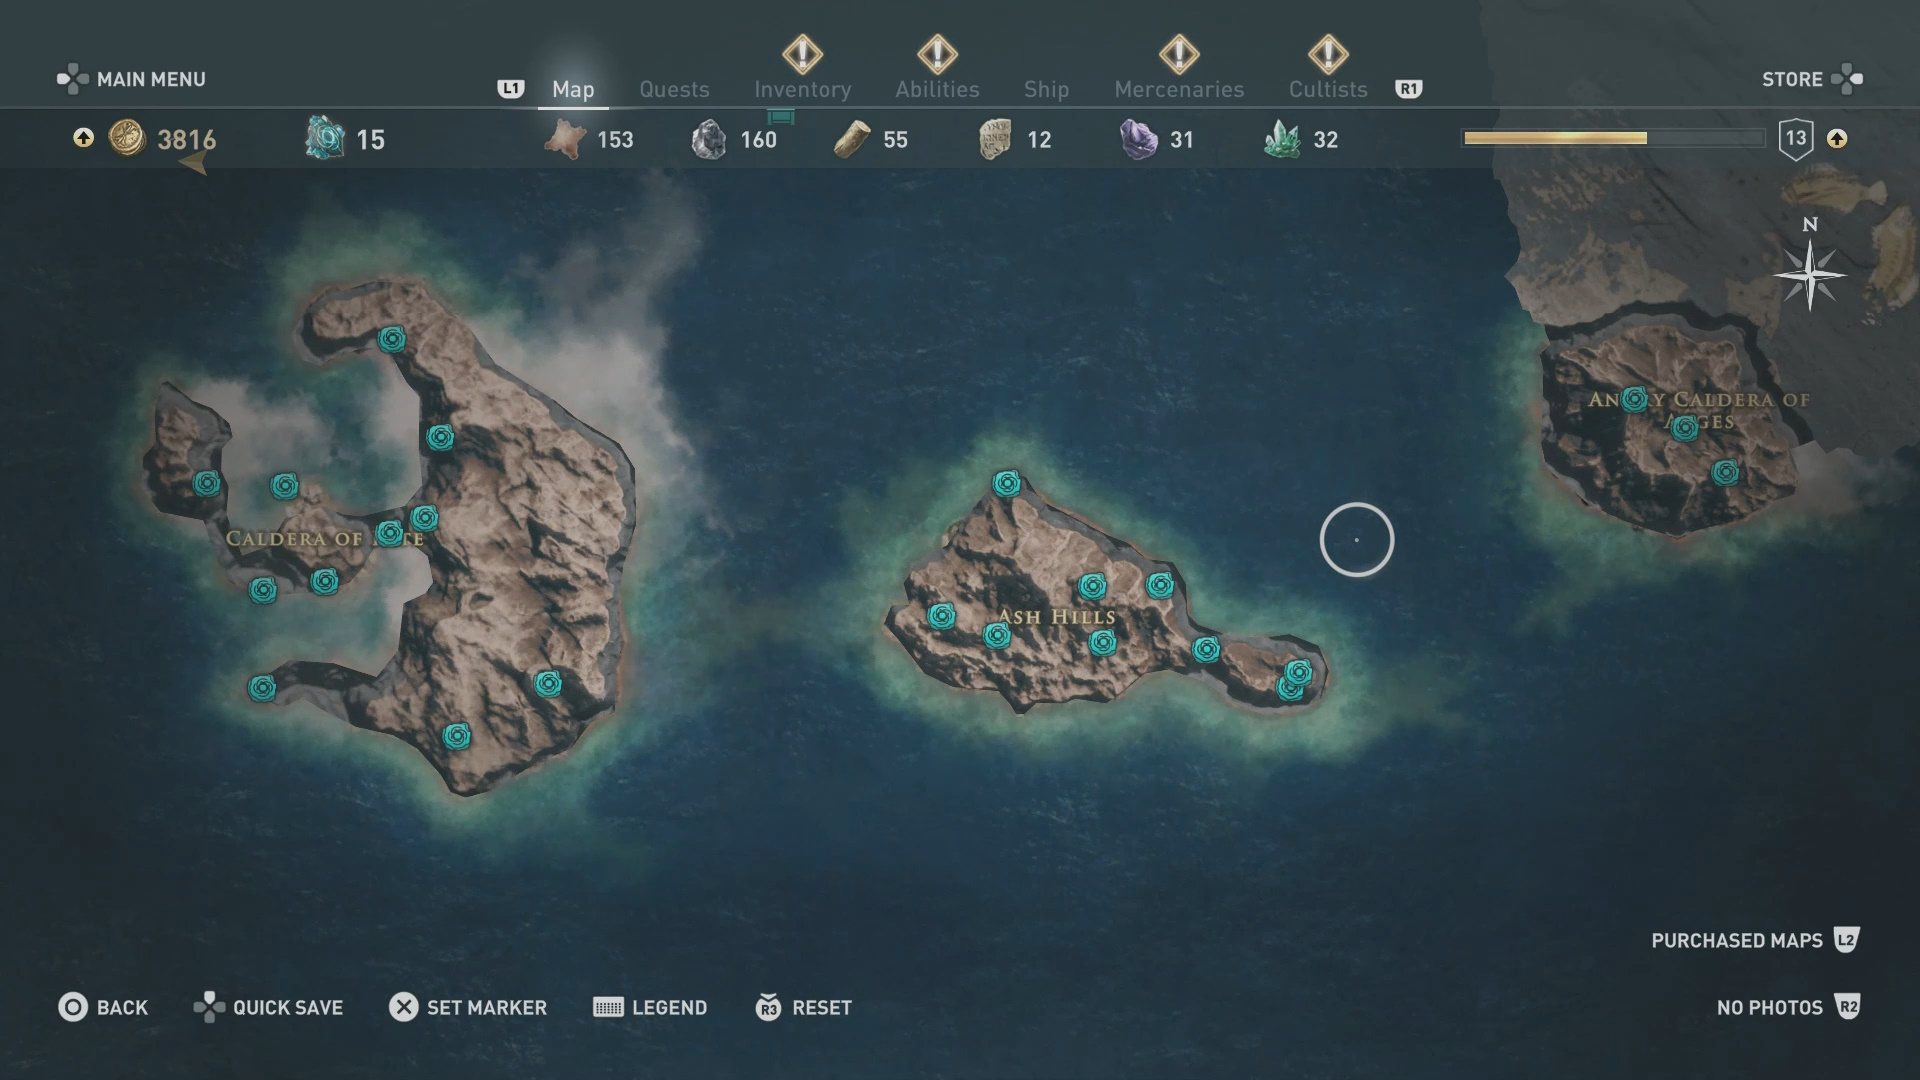 Assassin S Creed Odyssey Karte.Collectibles Locations Map Assassin S Creed Odyssey